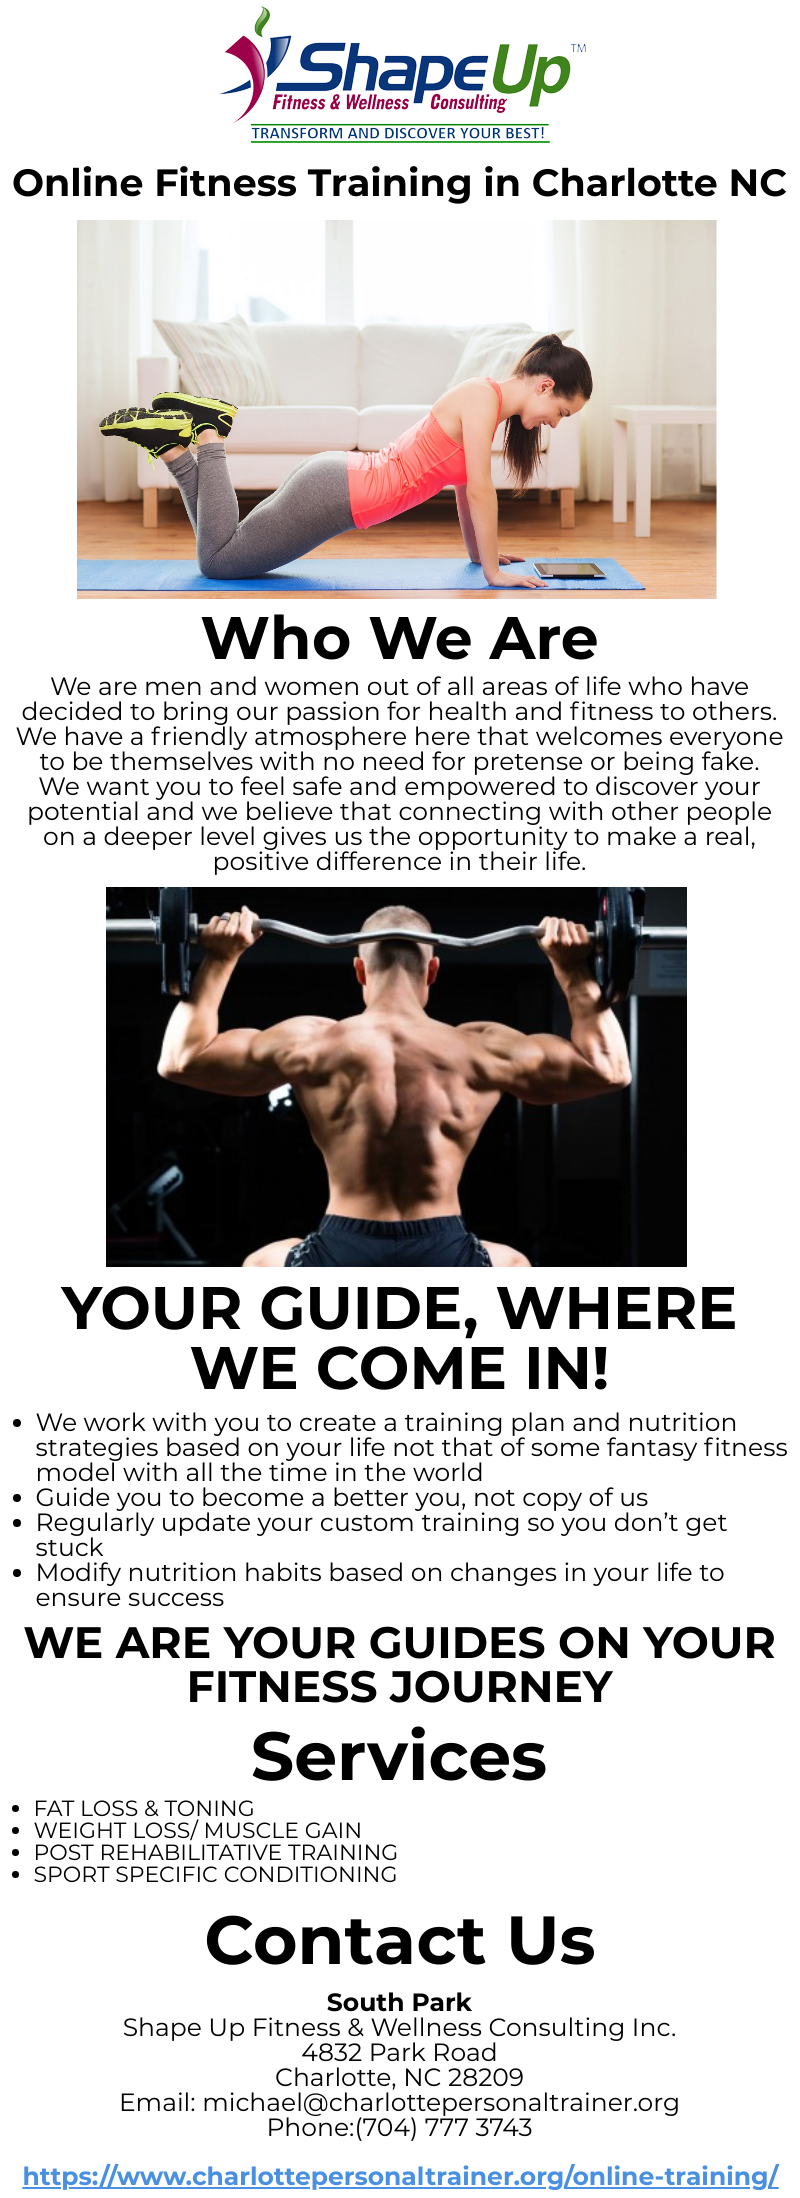 Online Fitness Training In Charlotte Nc Fitness Training Online Workouts Workout Training Programs